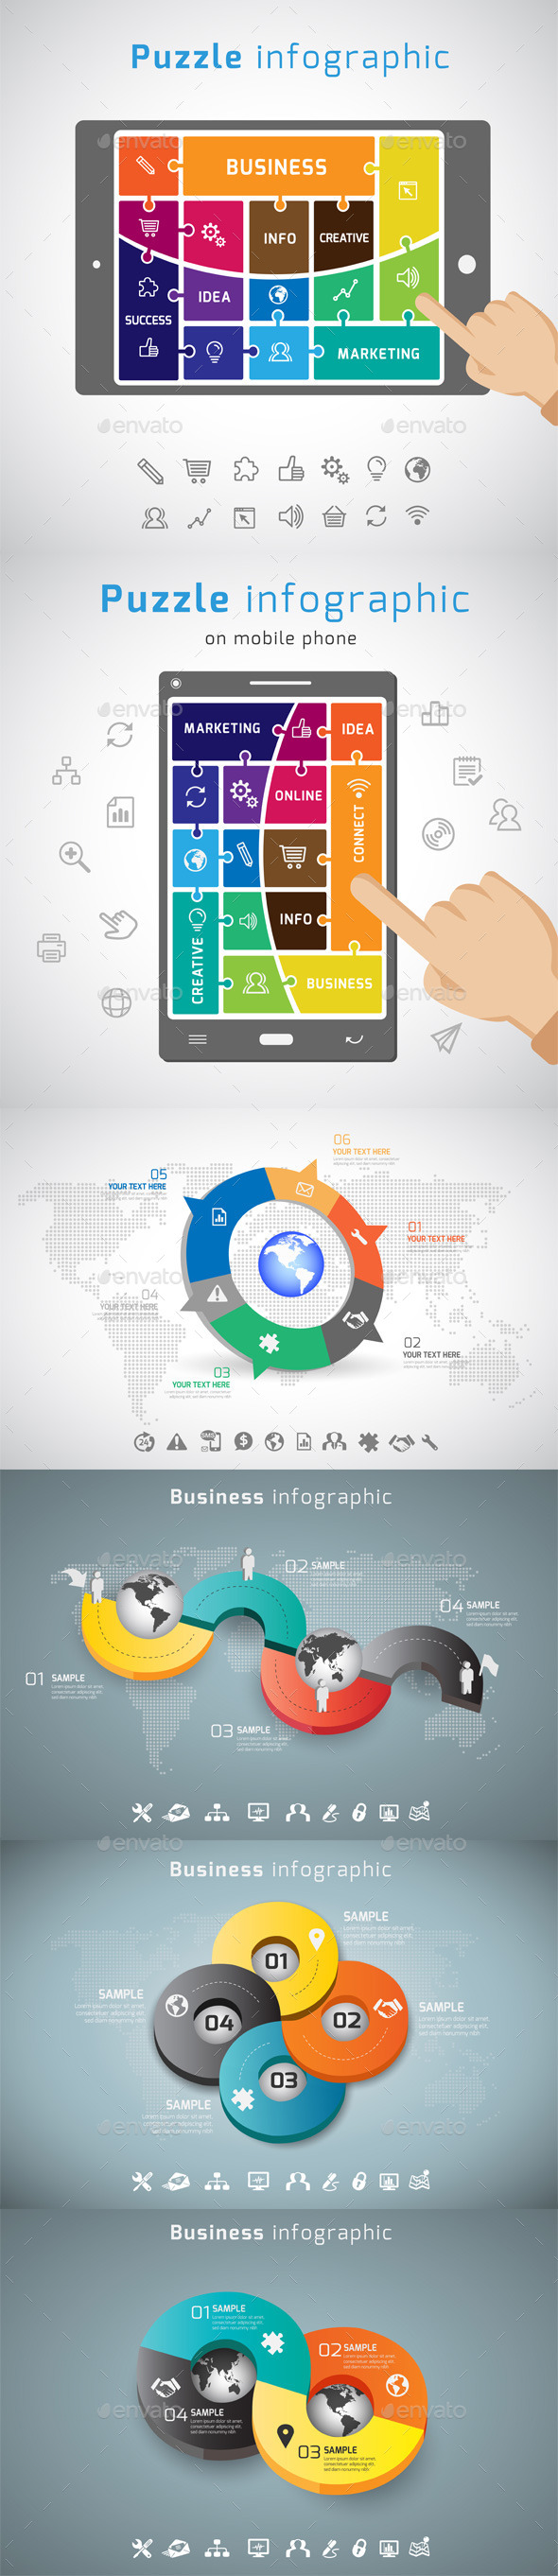 6 IN 1 Infographic templates Bundle